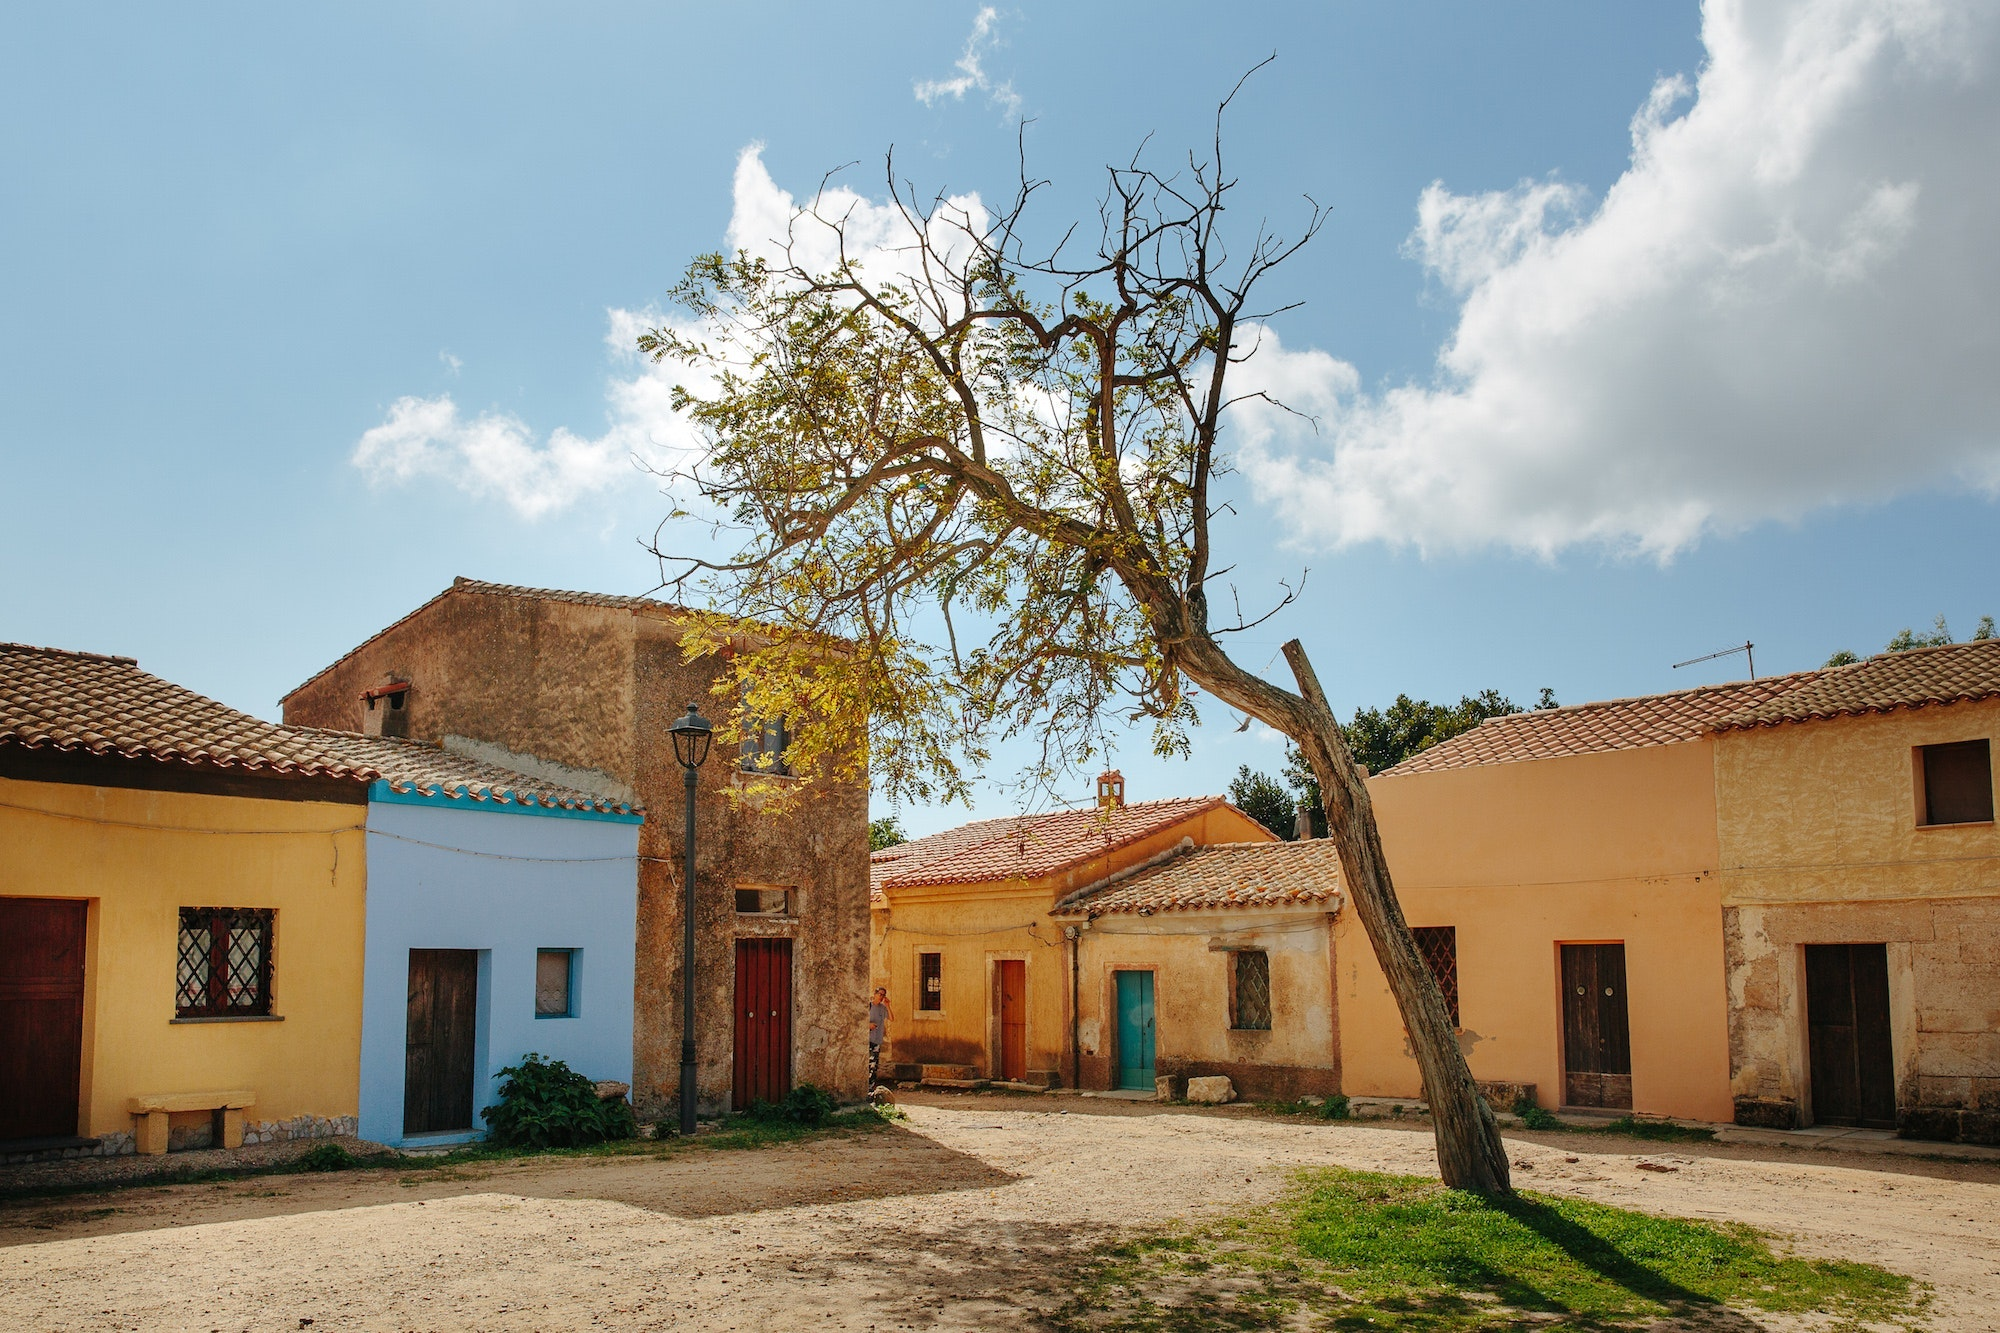 Colorful homes in Sardinia